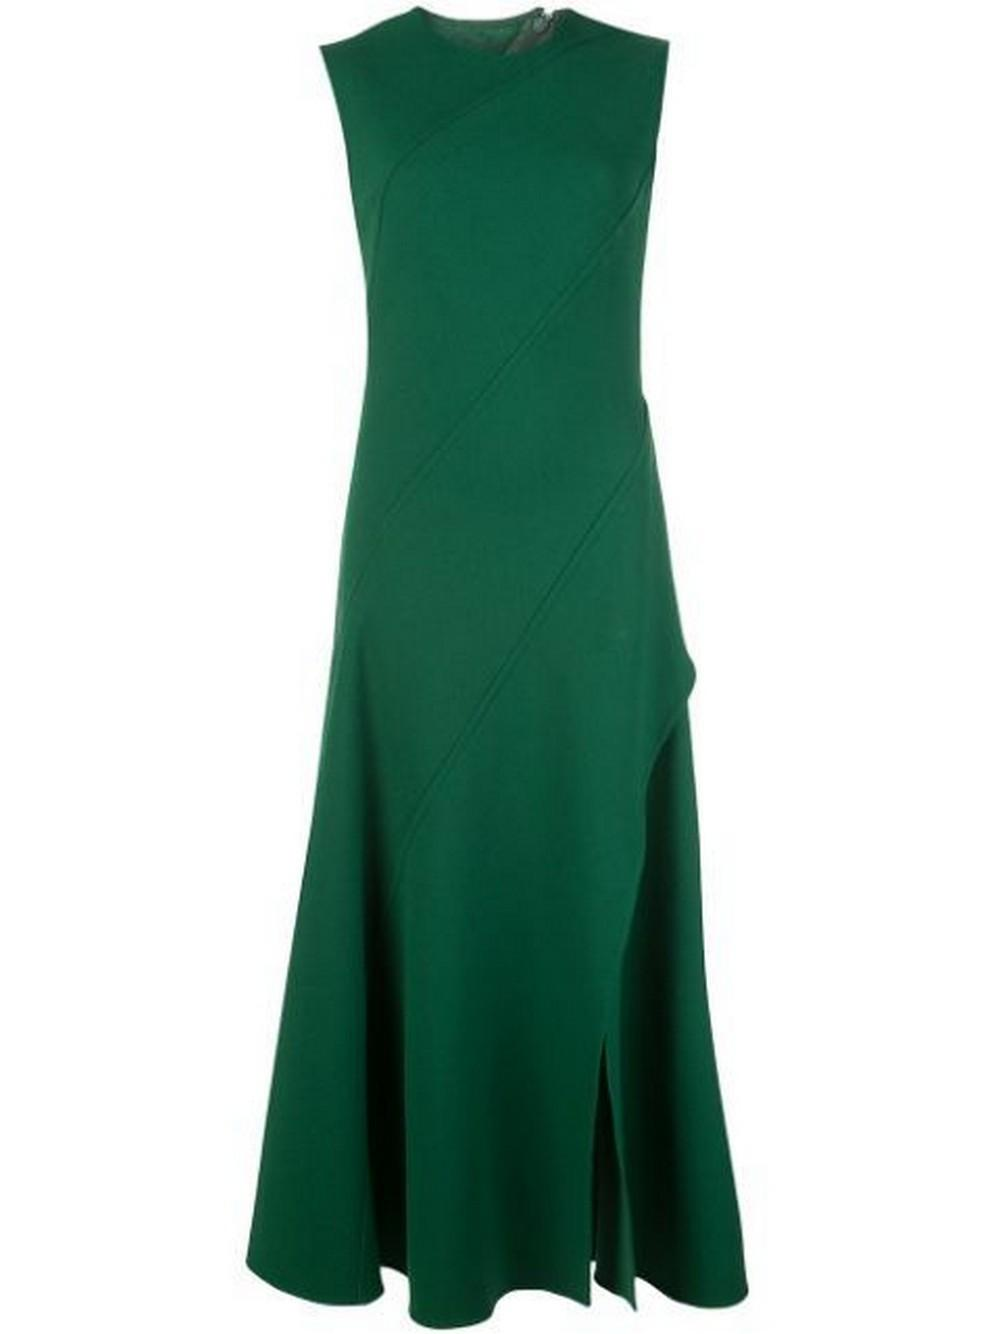 Sleeveless Day Dress With Side Slit